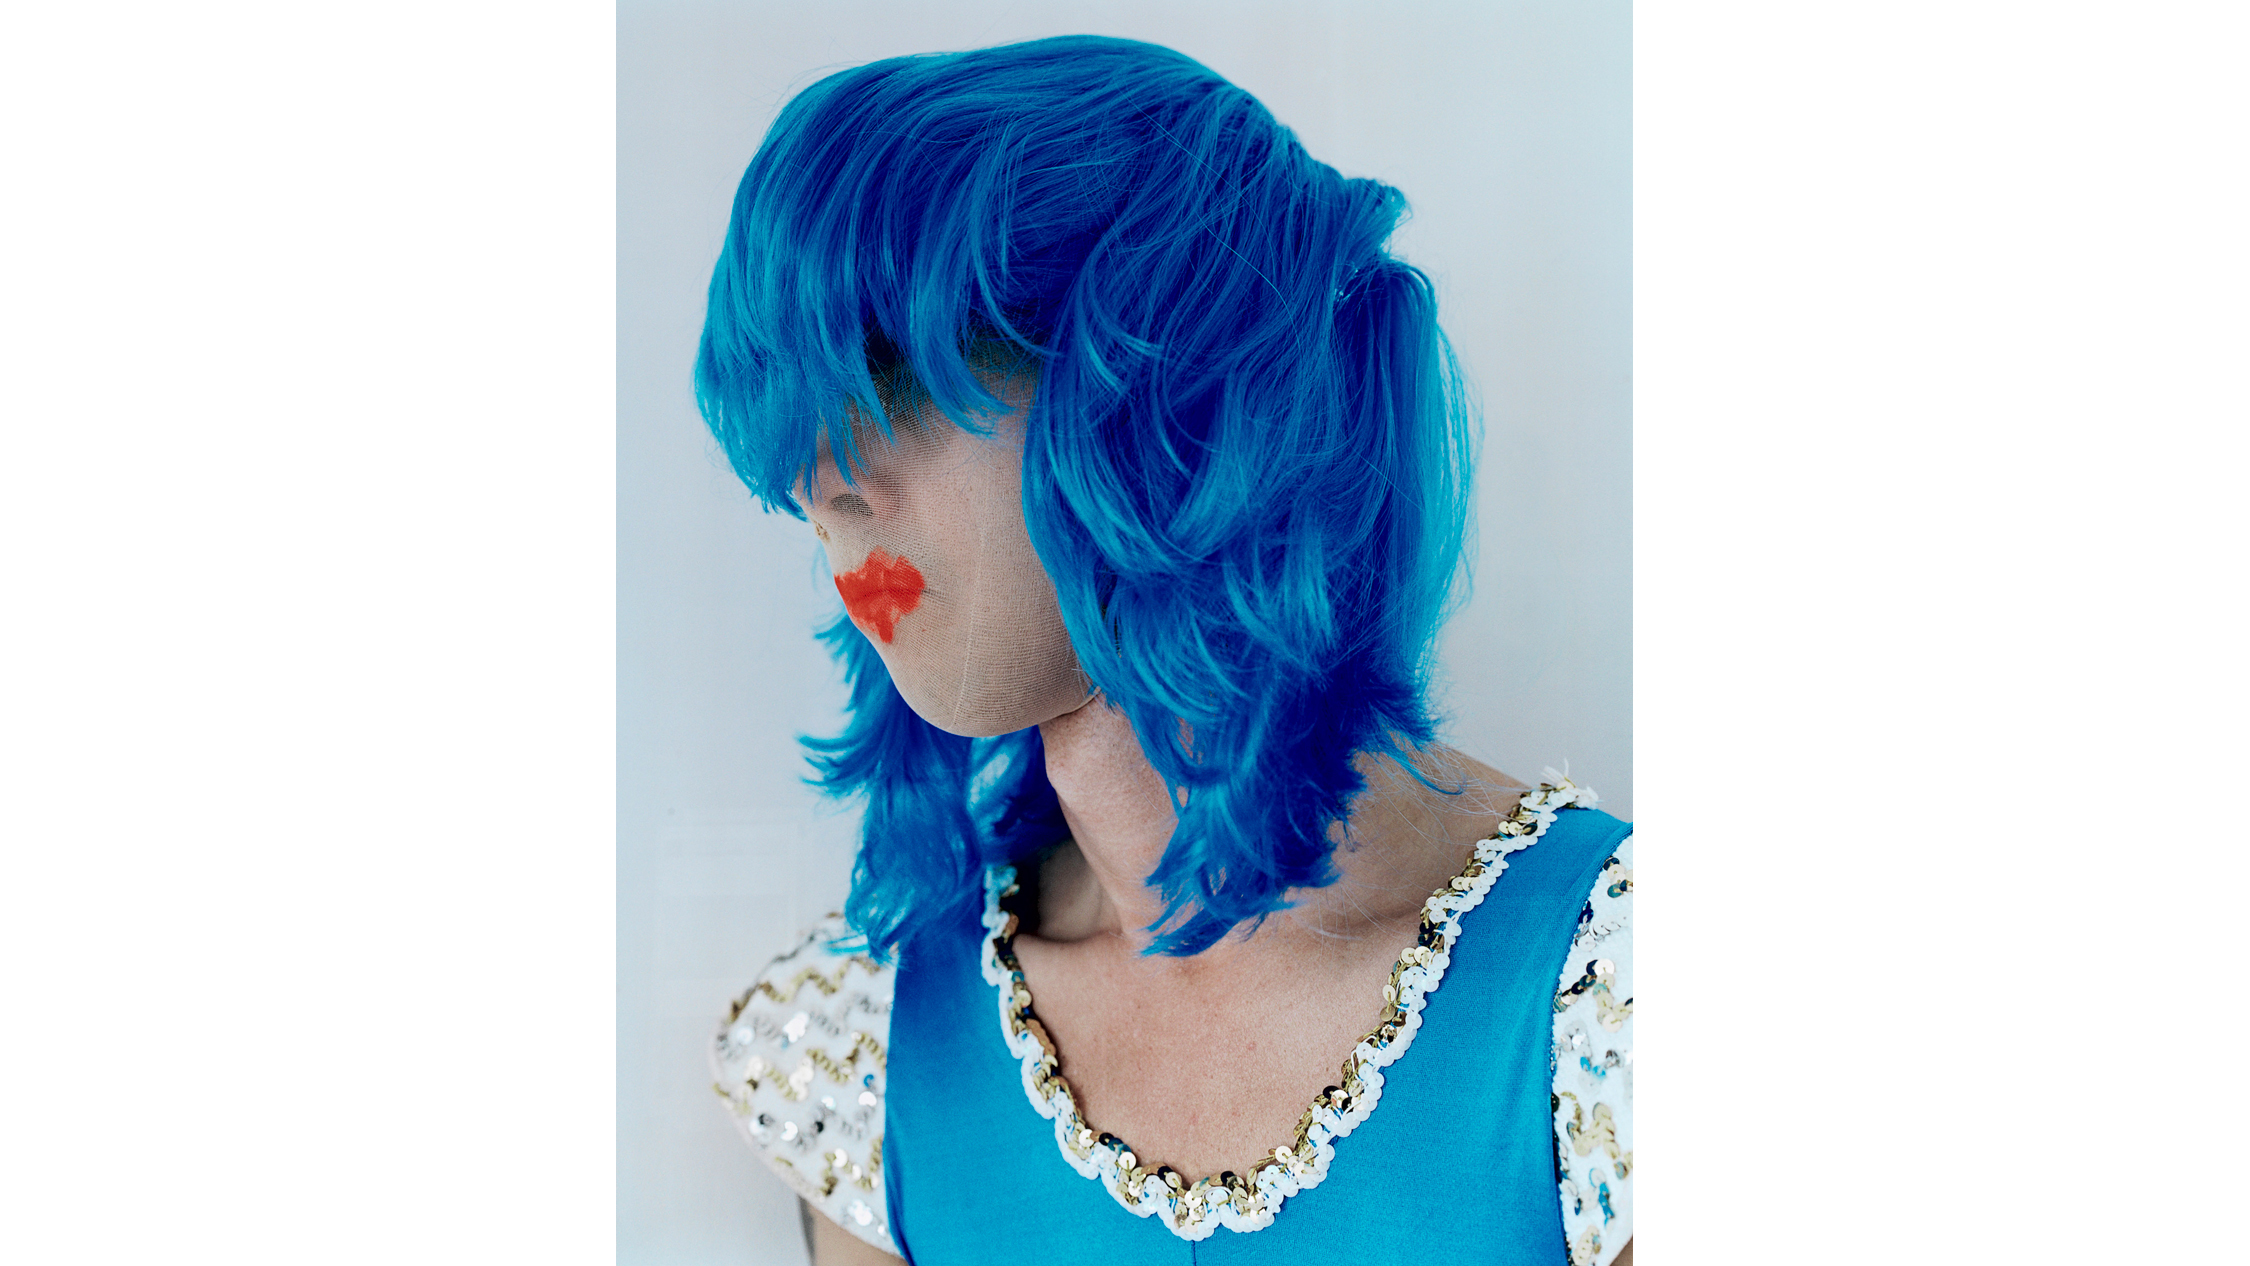 Polly Borland 'Untitled (Nick Cave in a blue wig)' 2010, © Polly Borland and Murray White Room